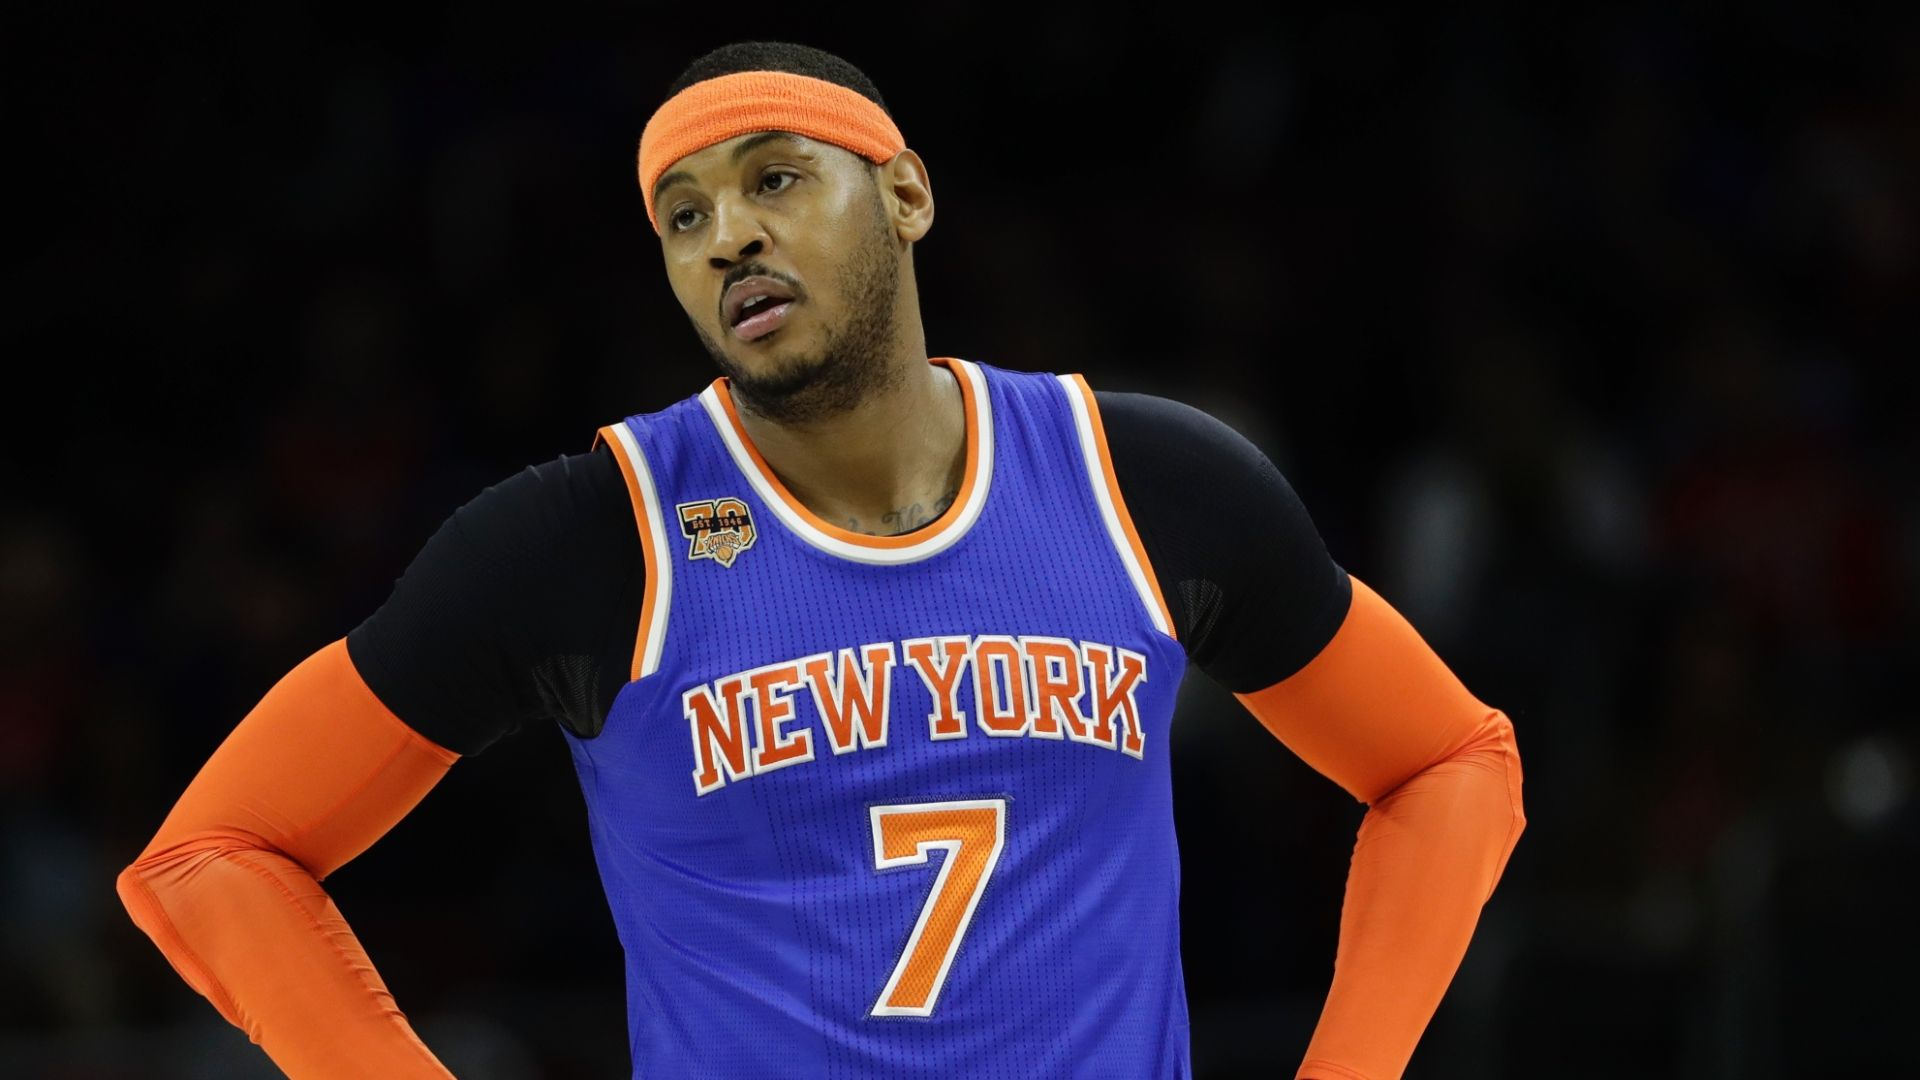 Windhorst says Melo would be 'worst player' for Cavs to acquire